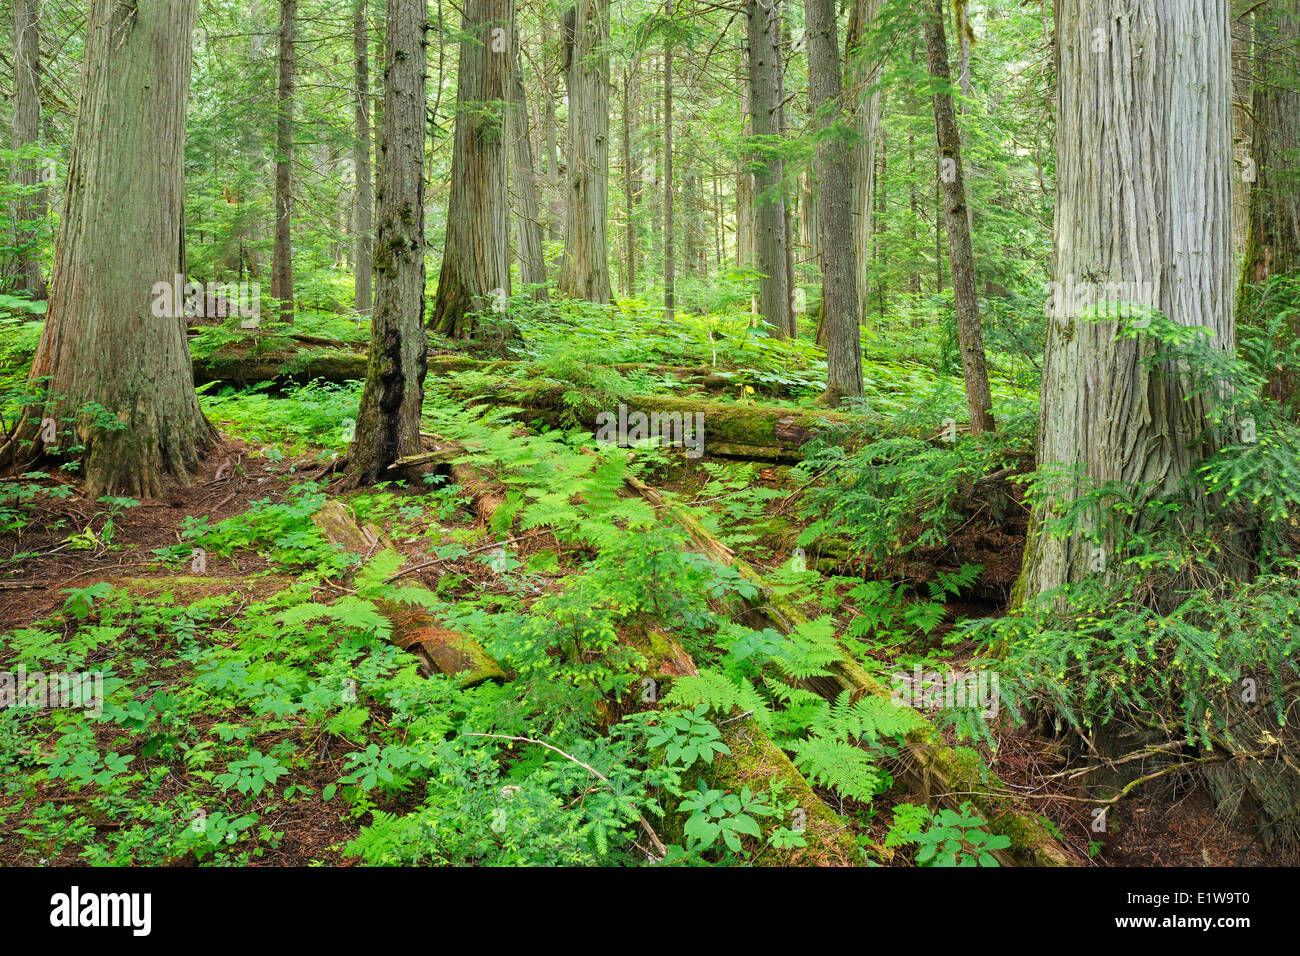 Old growth forest in Inland temperate rain forest on Giant Cedars Trail Mount Revelstoke National Park British Columbia Stock Photo